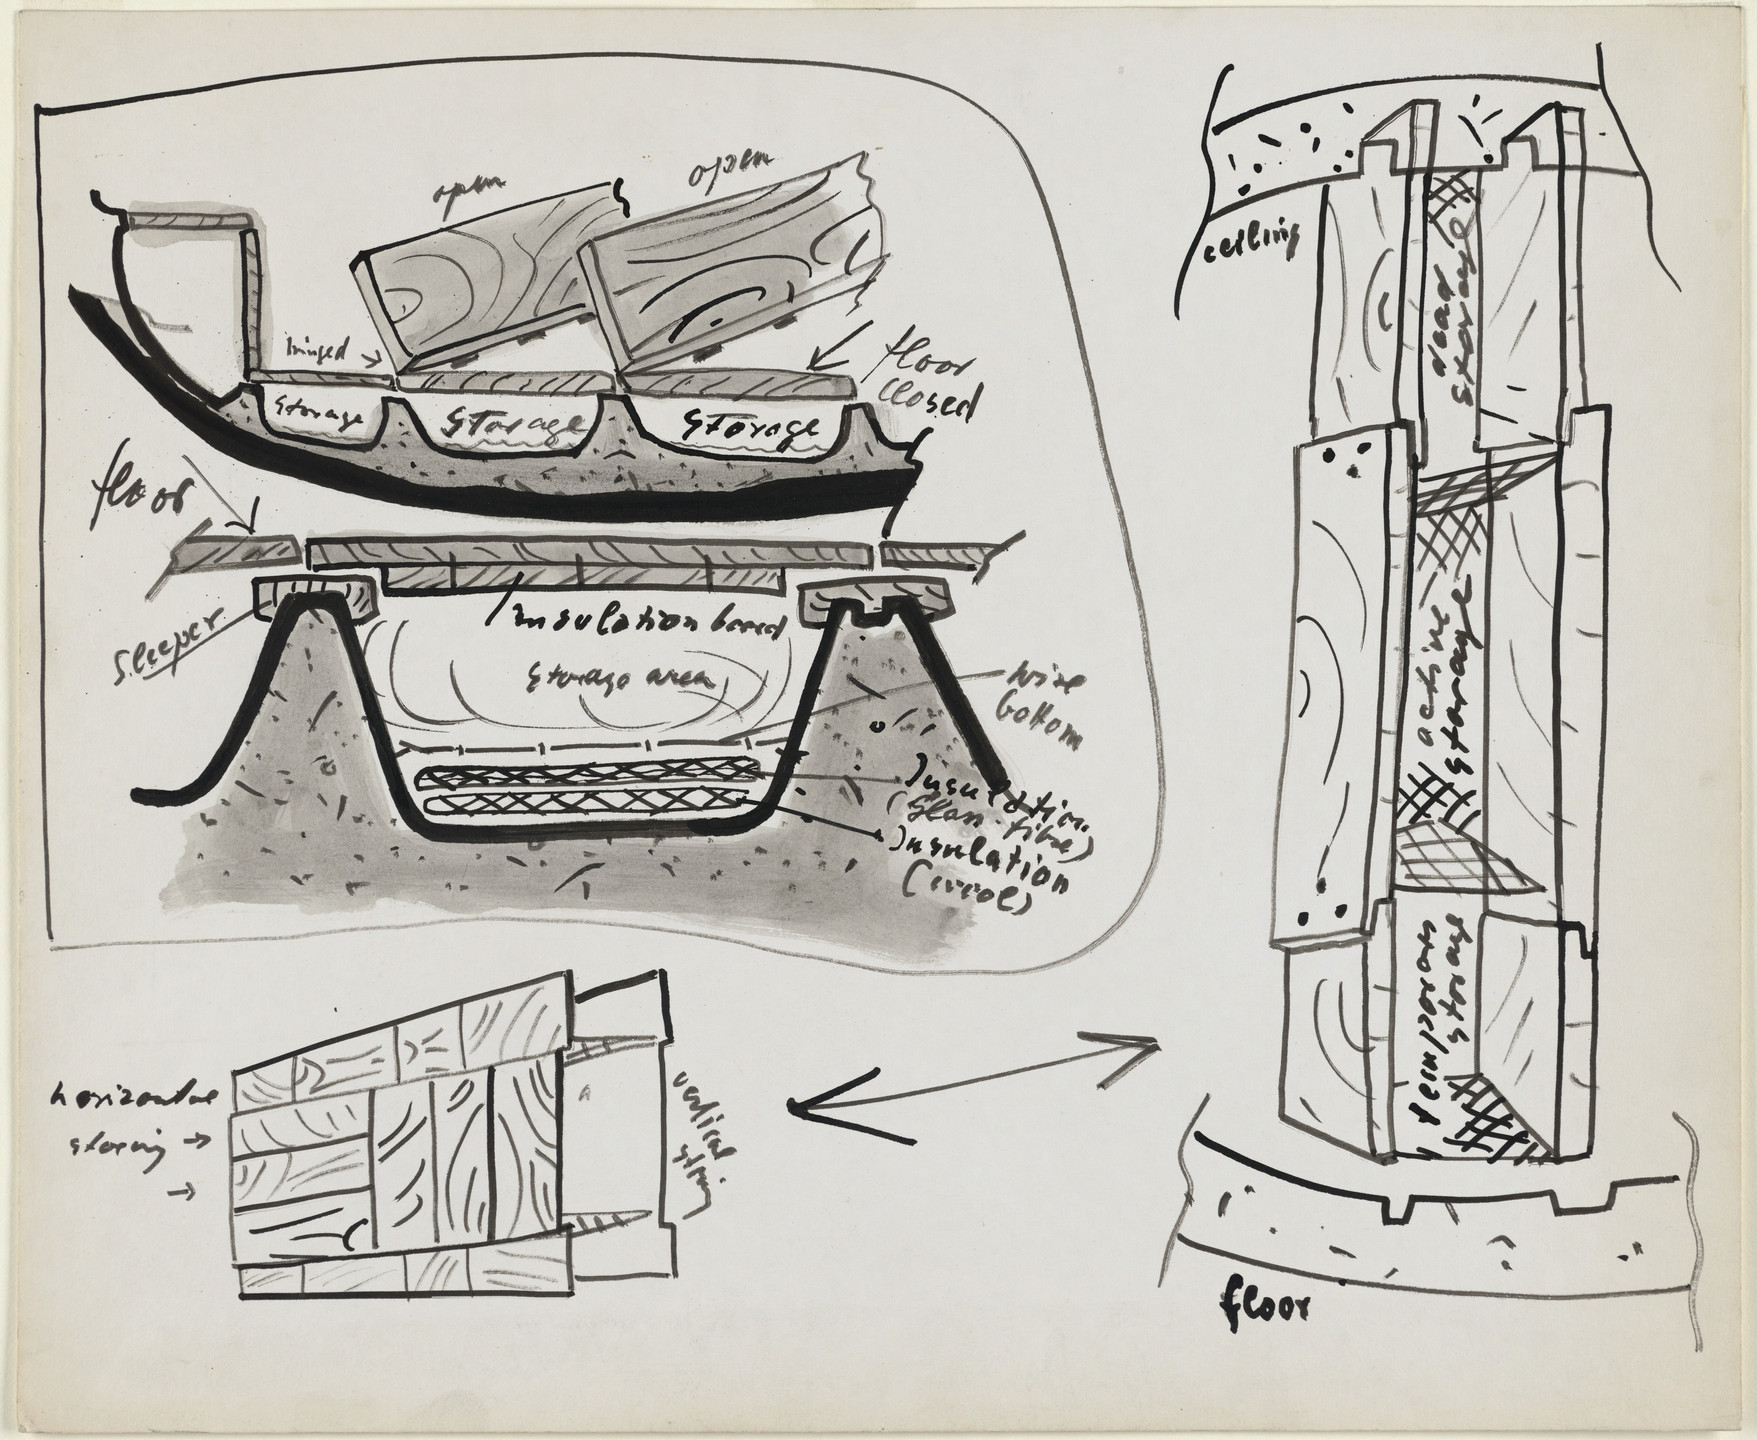 Frederick Kiesler. Endless House Project, Sections of storage areas and perspectives. 1951